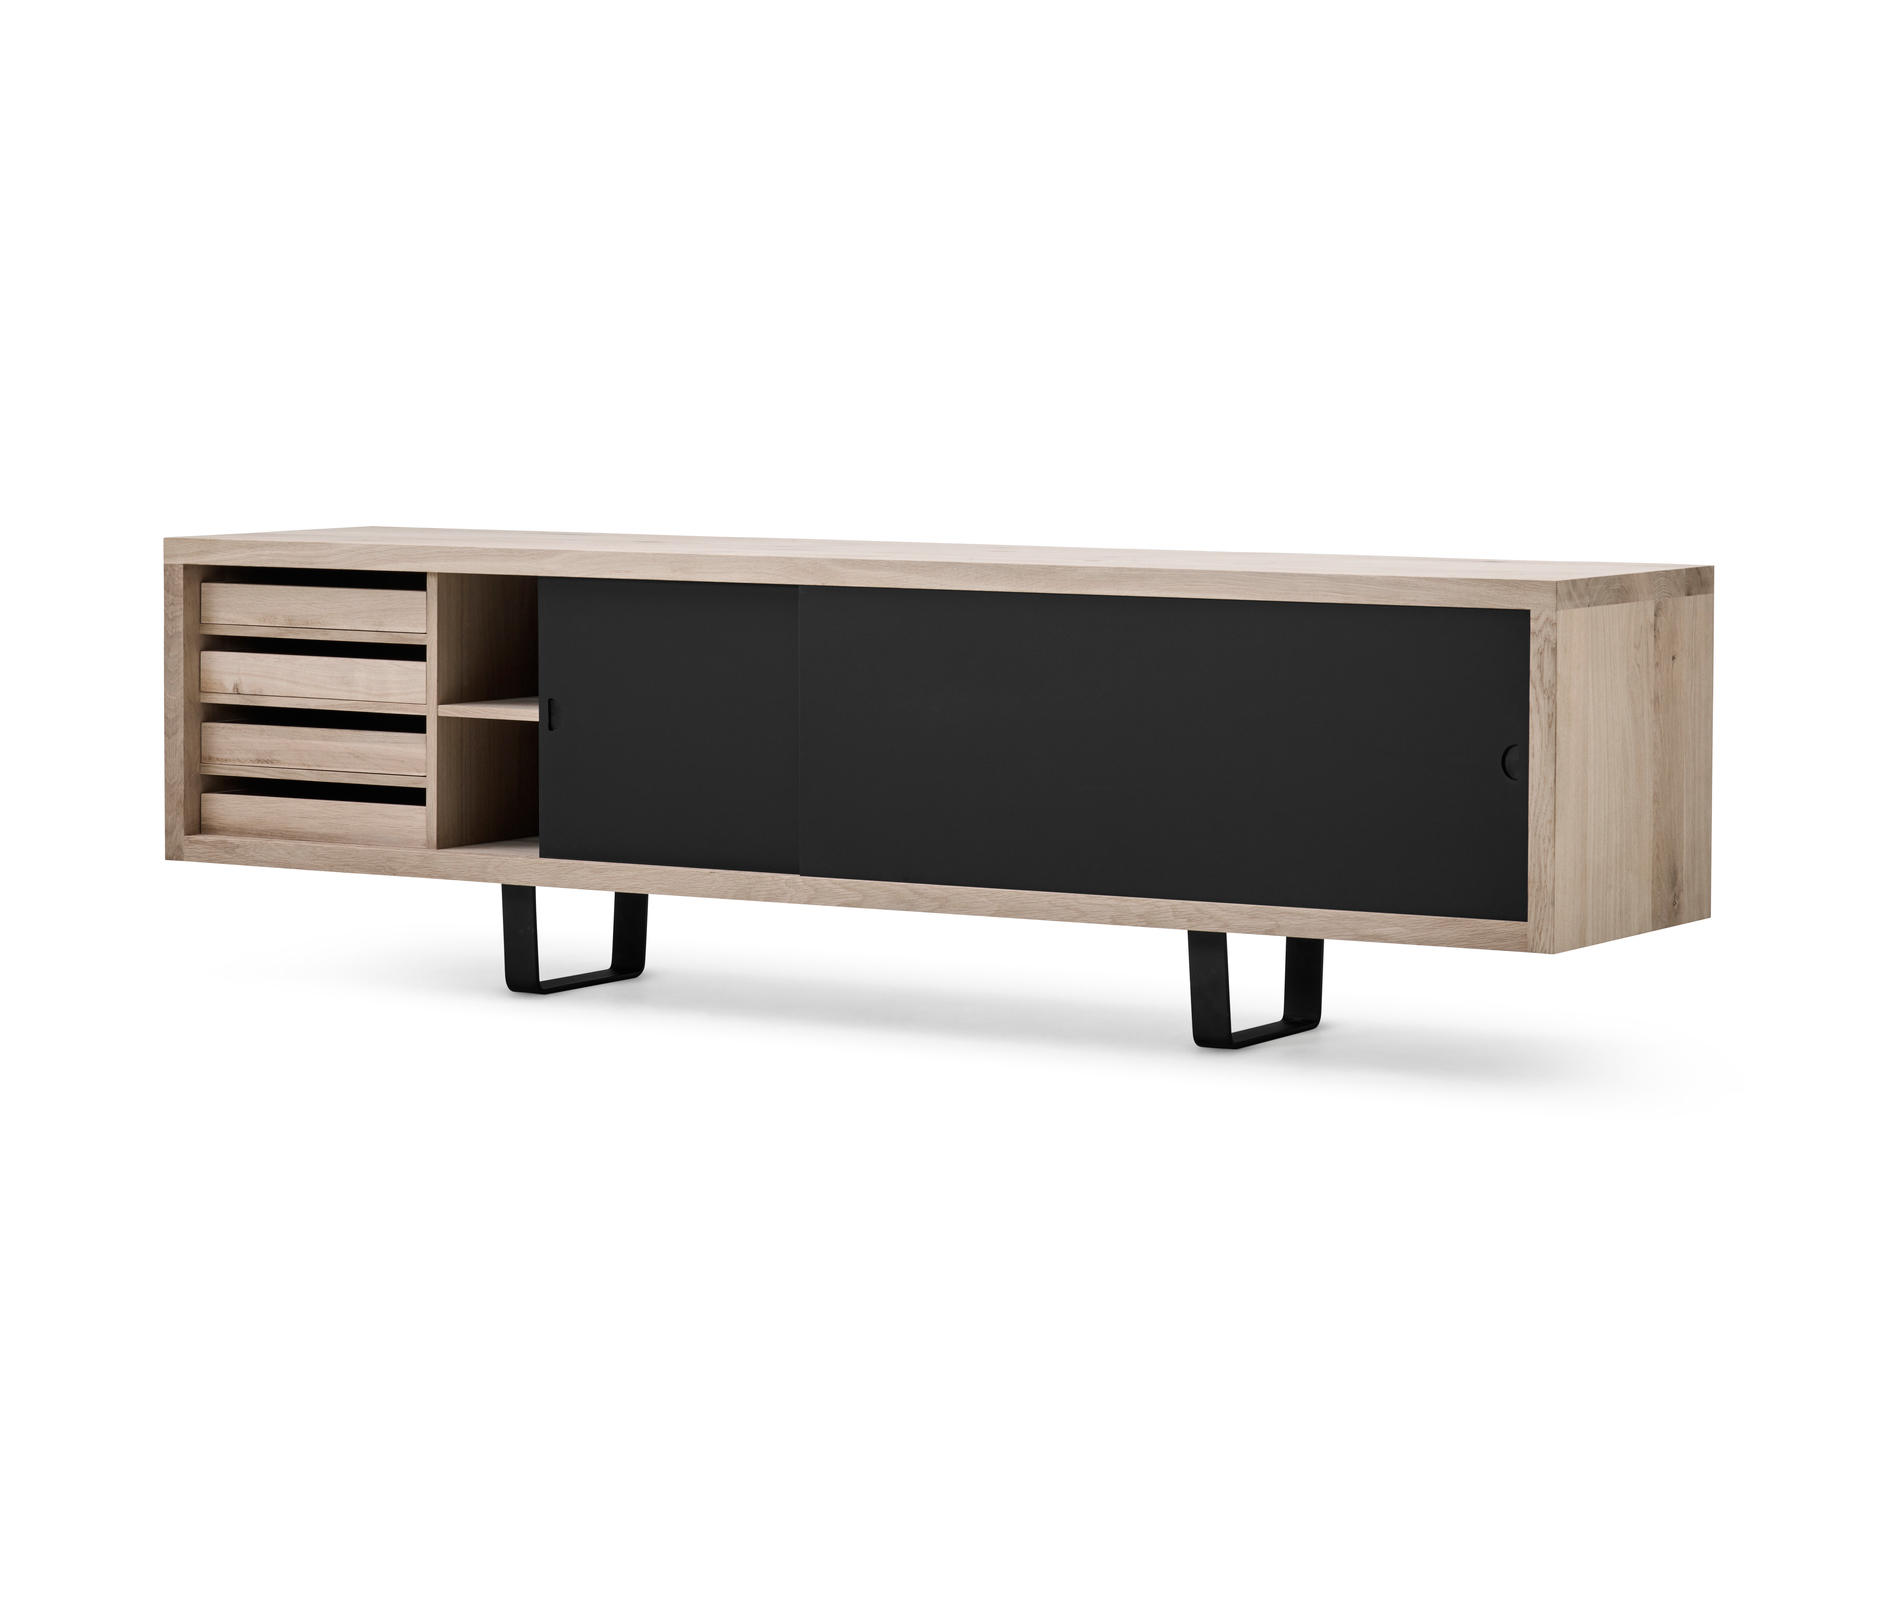 Tv Lowboard Zürich Grand Sideboard Sideboards From Dk3 Architonic